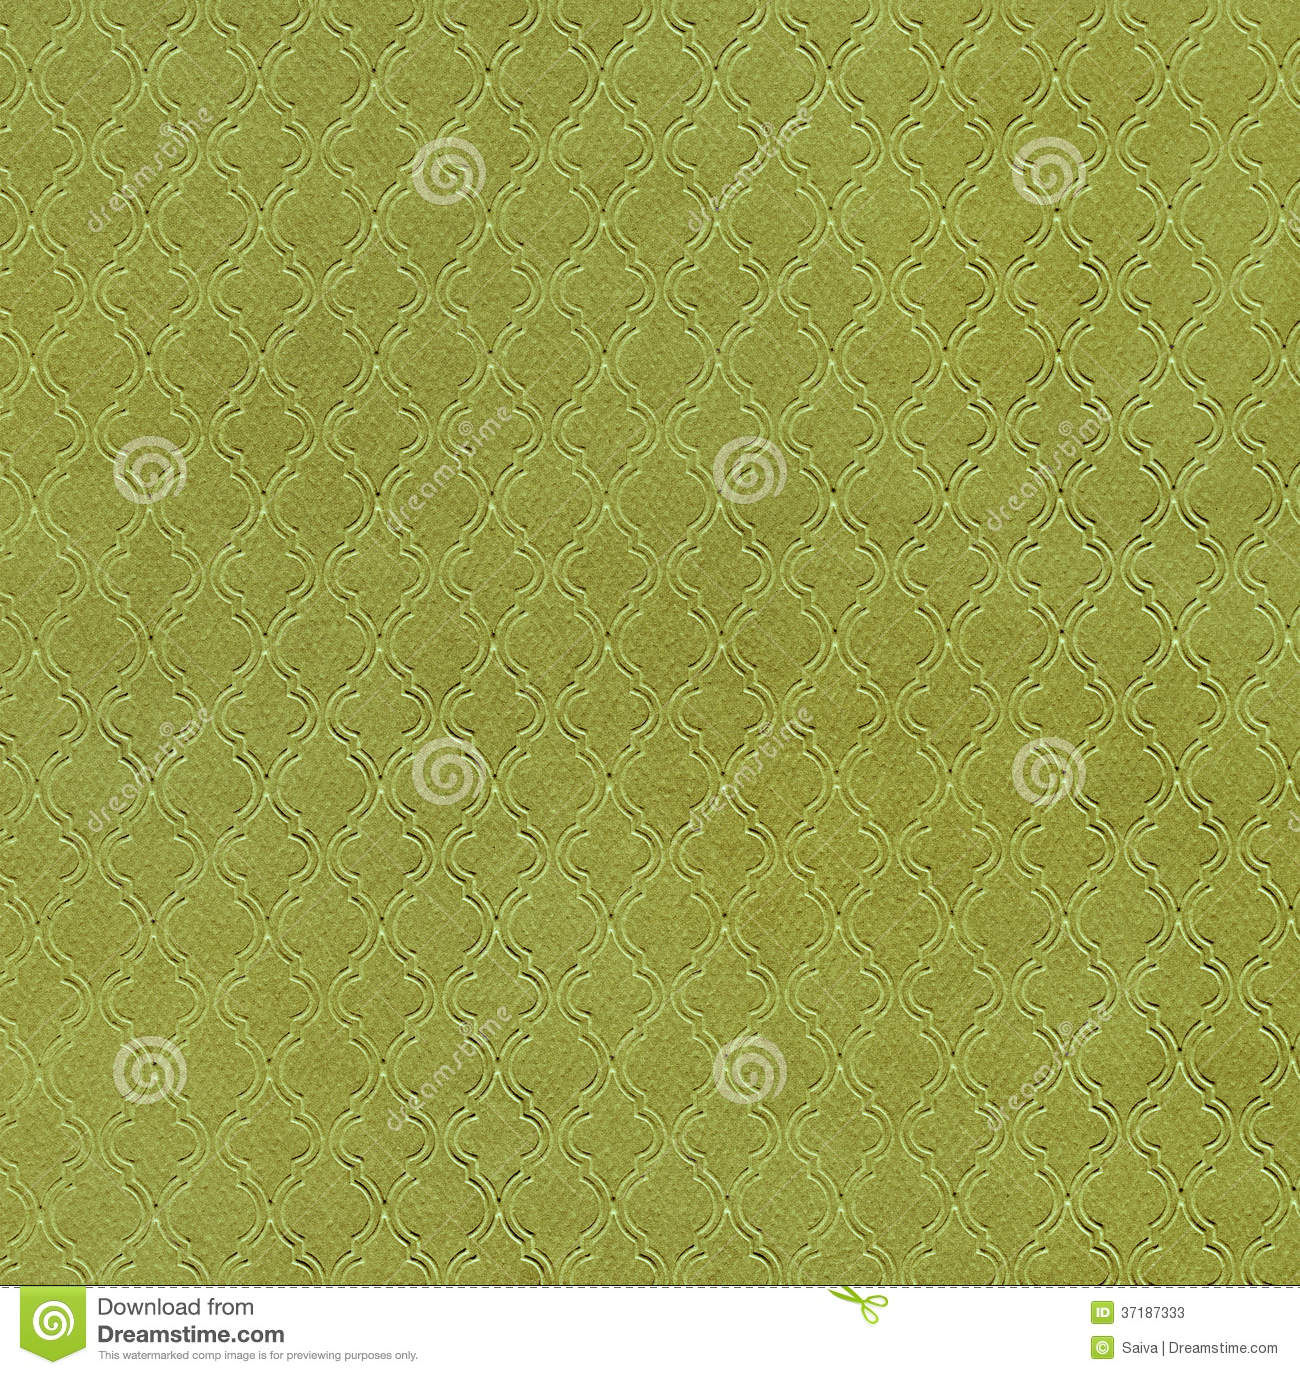 Olive Green Wallpaper Stock Photos Image 37187333